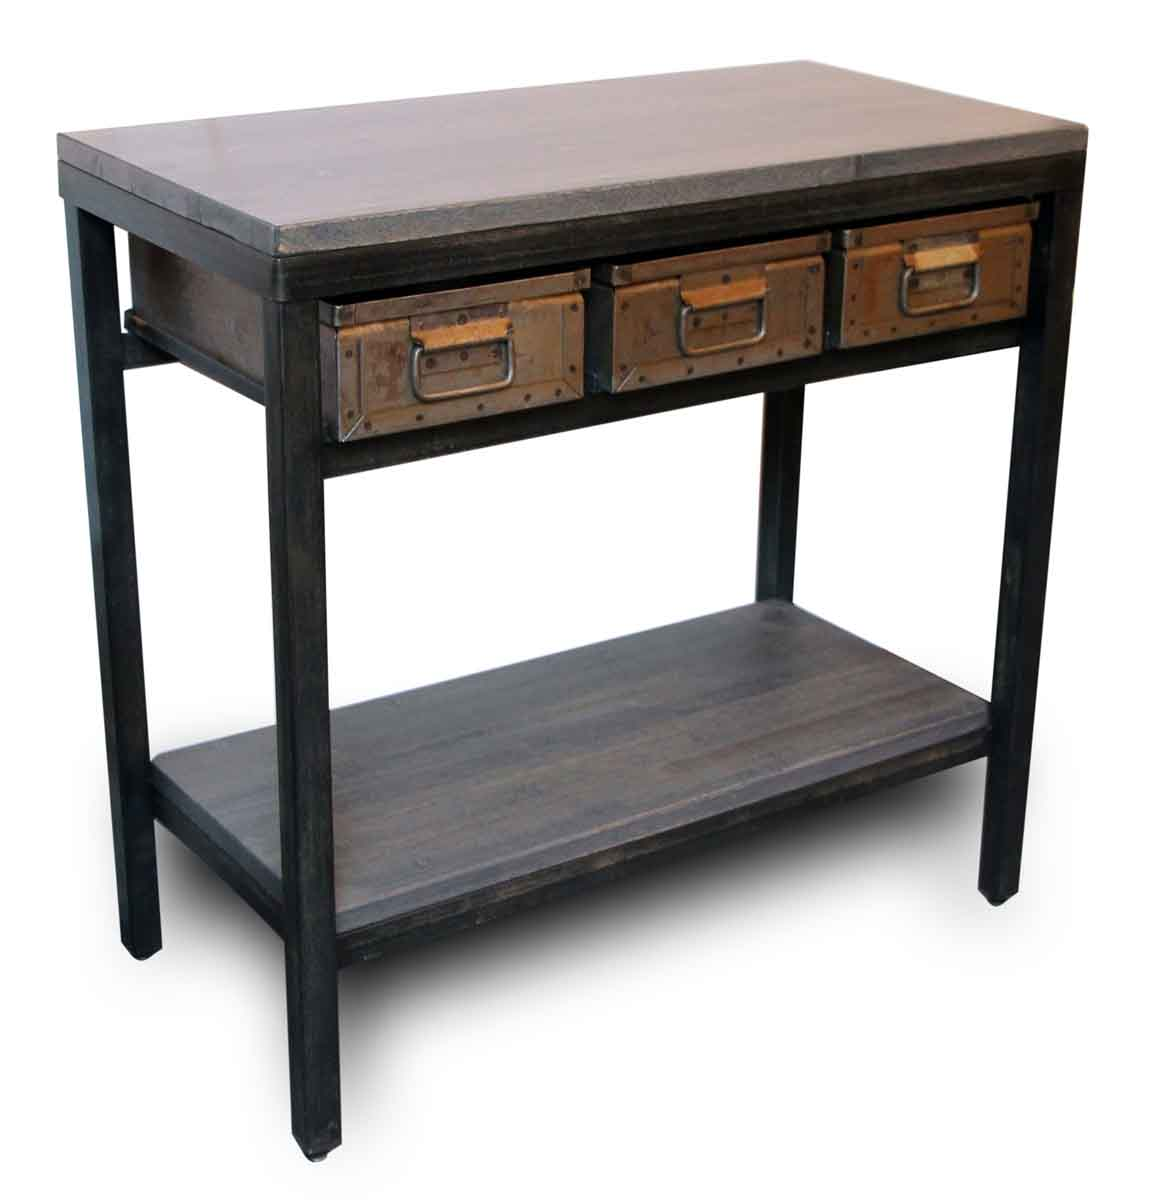 Antique Coffee Tables With Drawers: Console Table With Three Metal Drawers